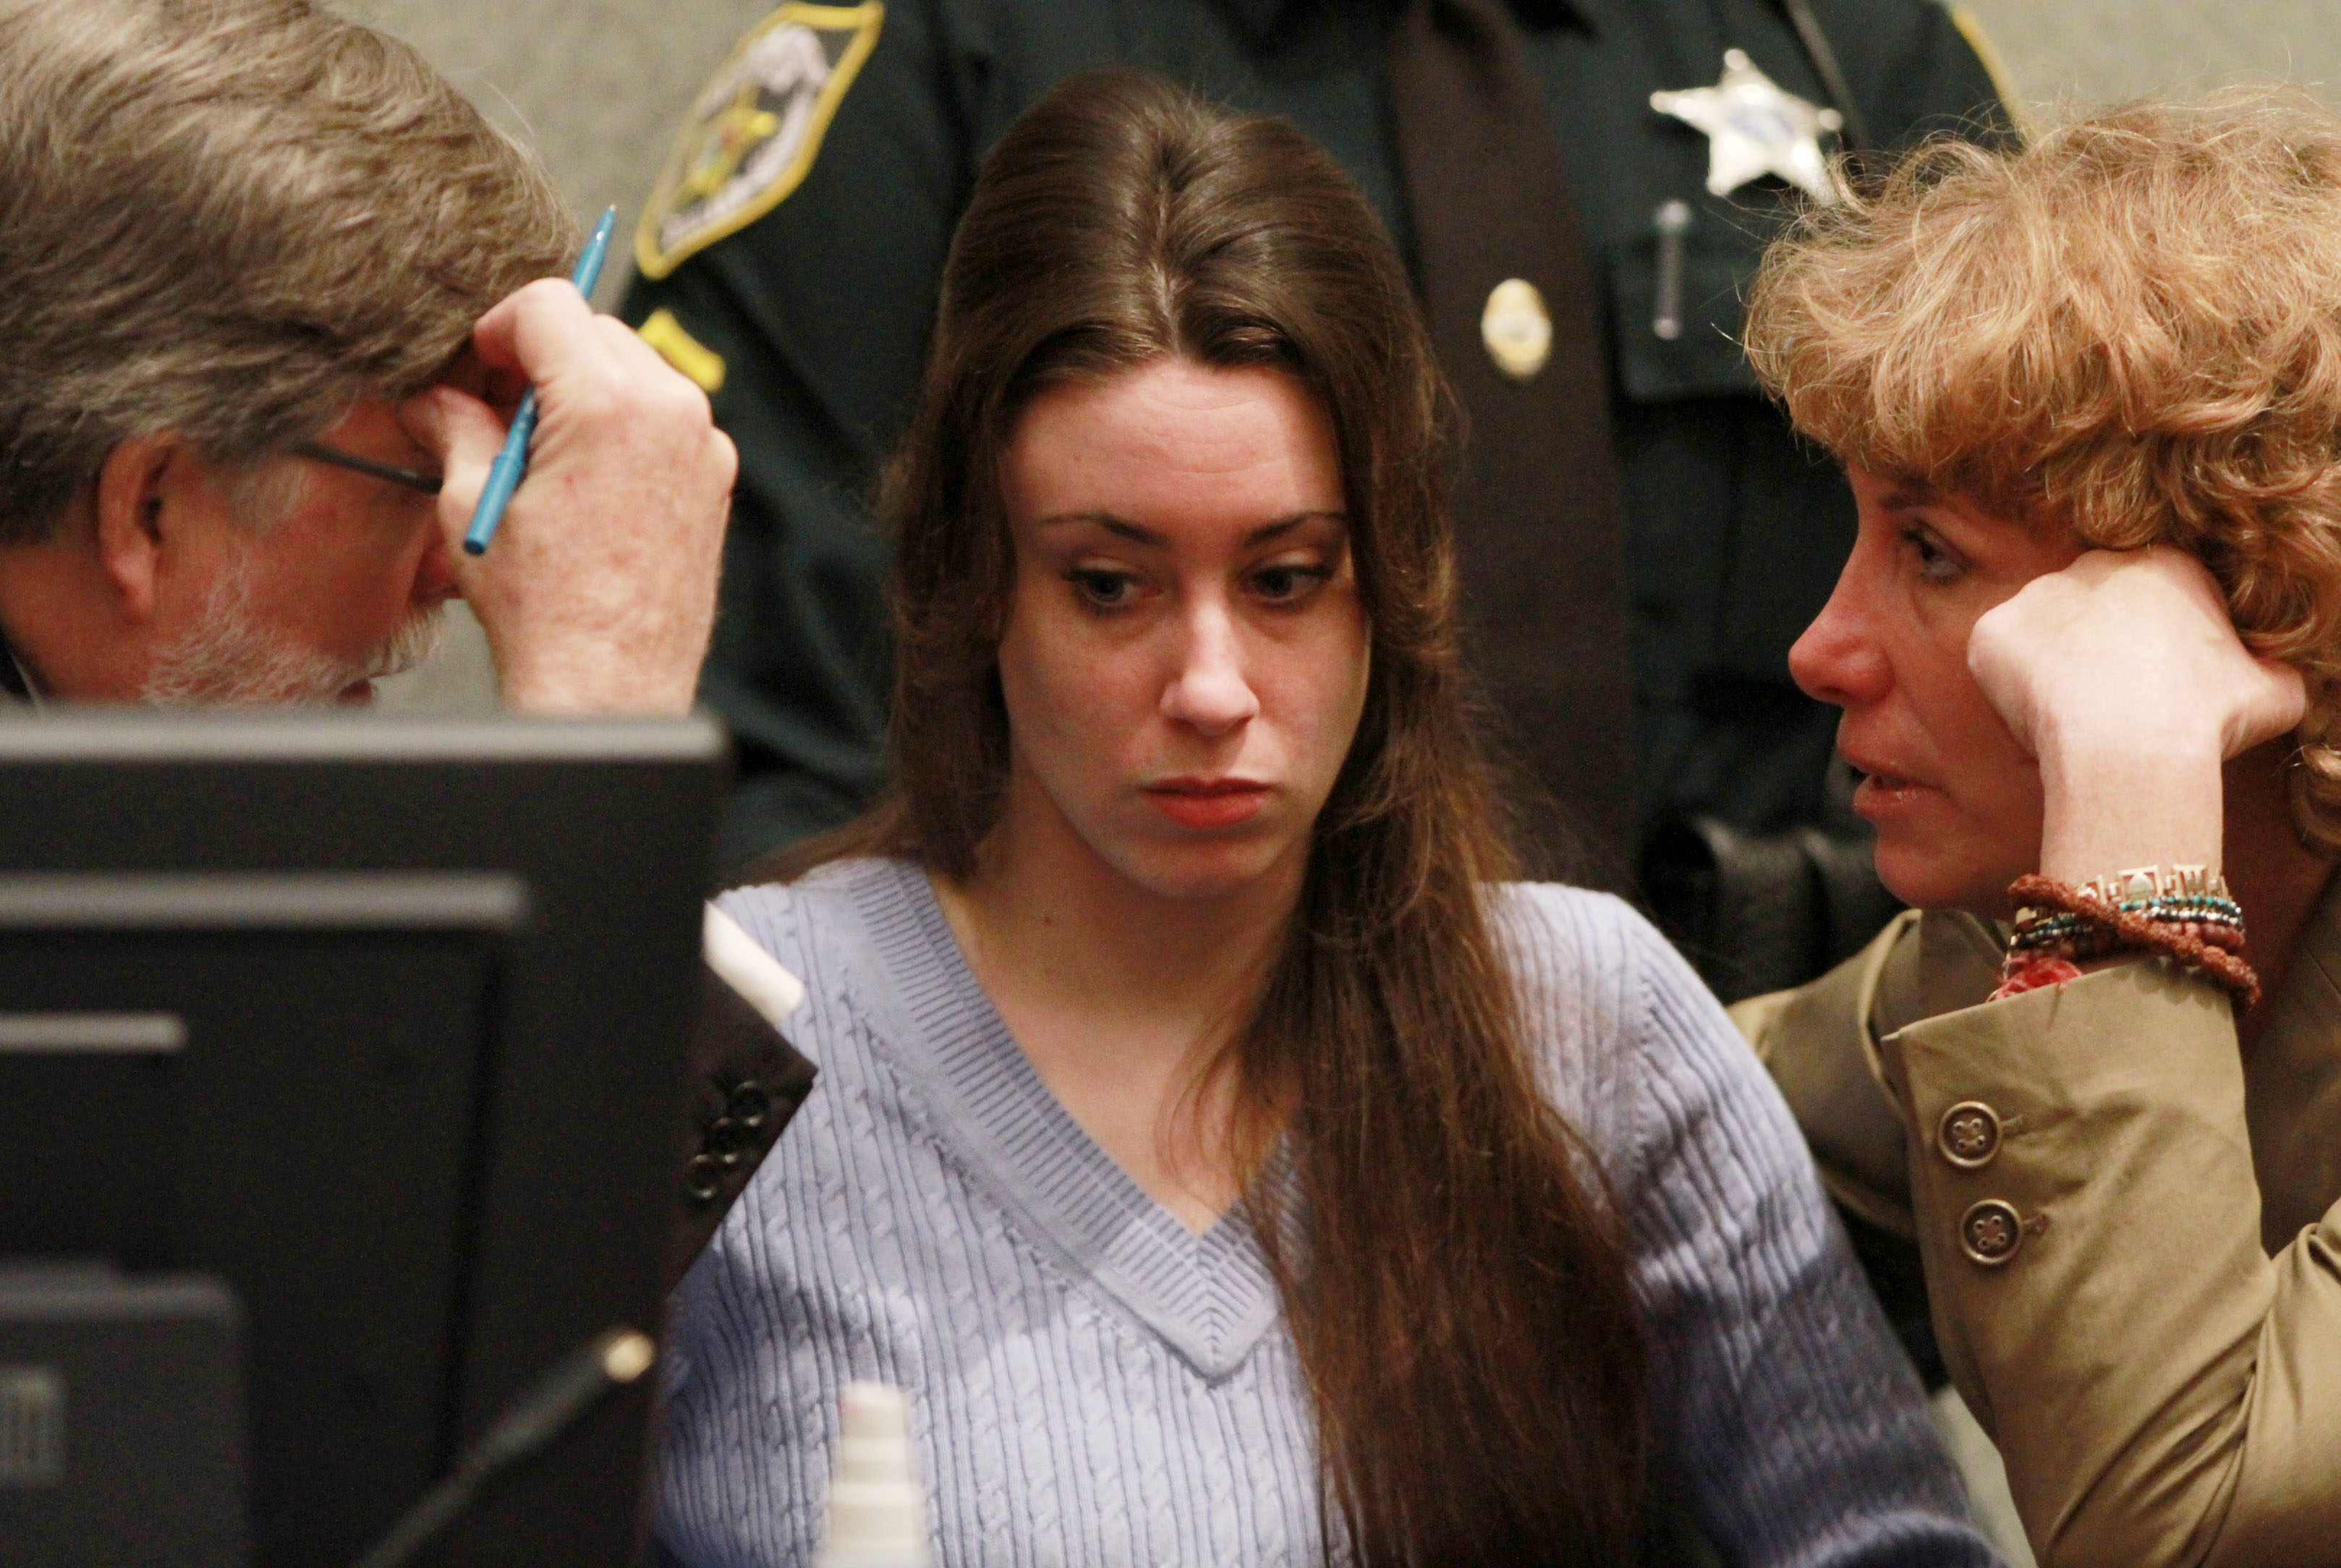 Casey Anthony (C) sits with her attorneys Cheney Mason (L) and Dorothy Clay Sims (R) before the start of her sentencing hearing on charges of lying to a law enforcement officer at the Orange County Courthouse July 7, 2011 in Orlando, Florida. Anthony was acquitted of murder charges on July 5, 2011 but will serve four, one-year sentences on her conviction of lying to a law enforcement officer. She will be credited for the nearly three-years of time served and good behavior and will be released July 13.